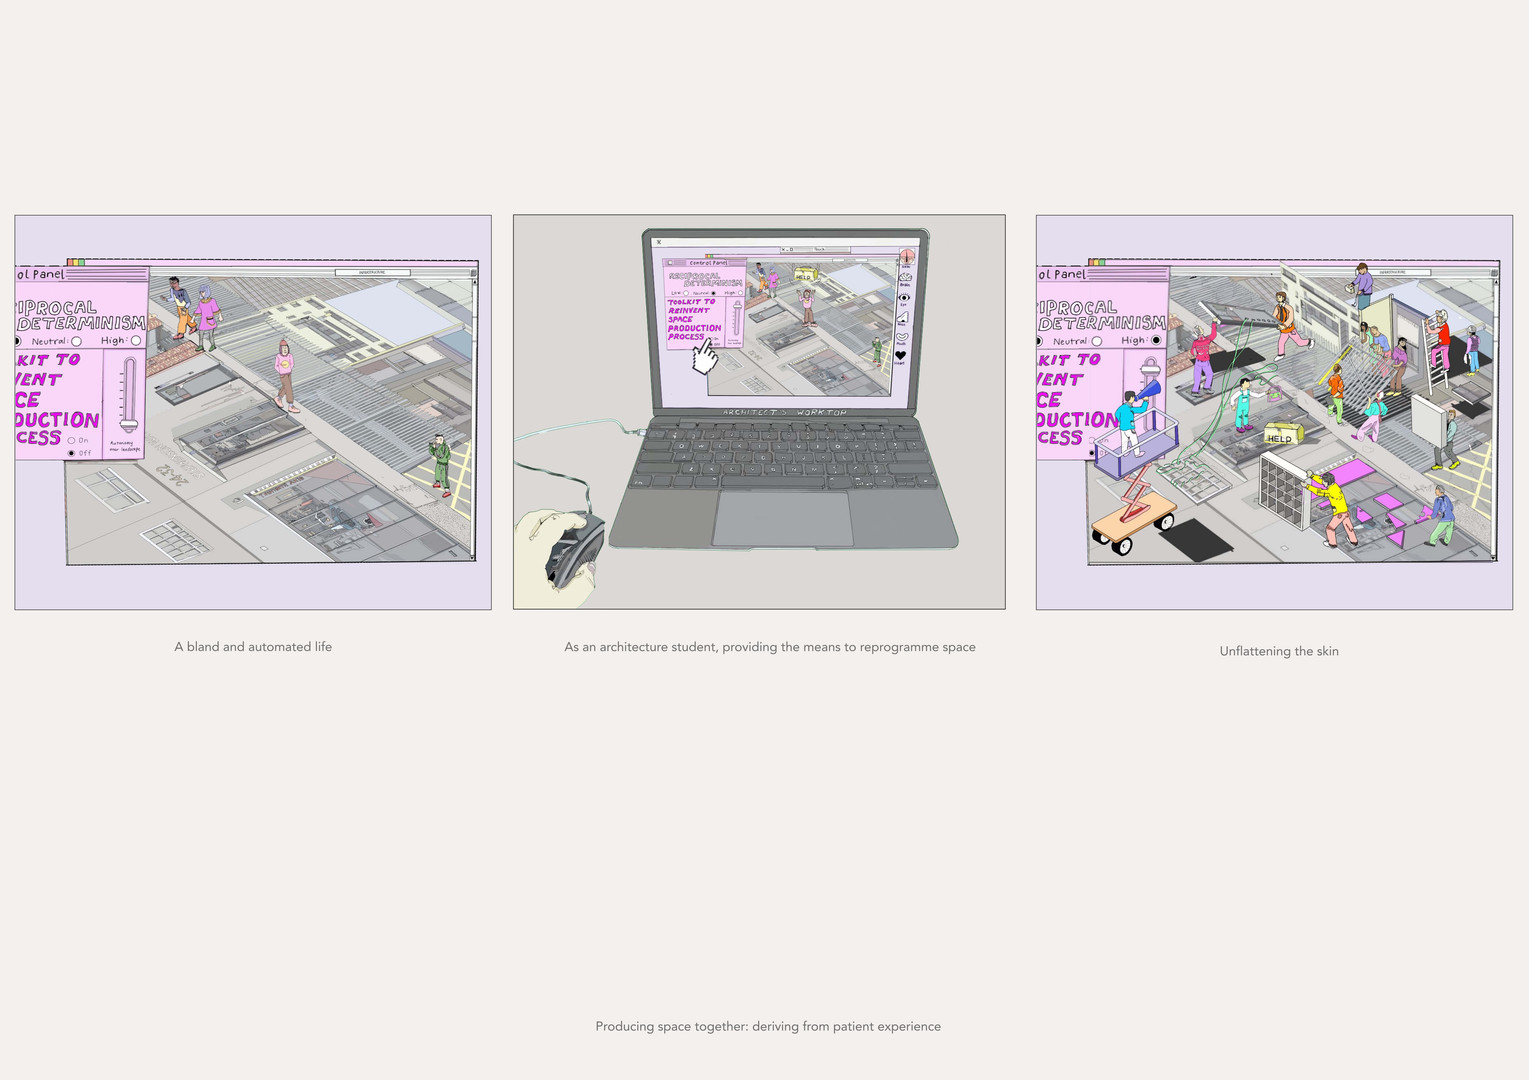 Y3 Final Project - Conceptual Representation of Project's Outcome  Providing a toolkit to recreate the space to the occupants creates an engaging built environment